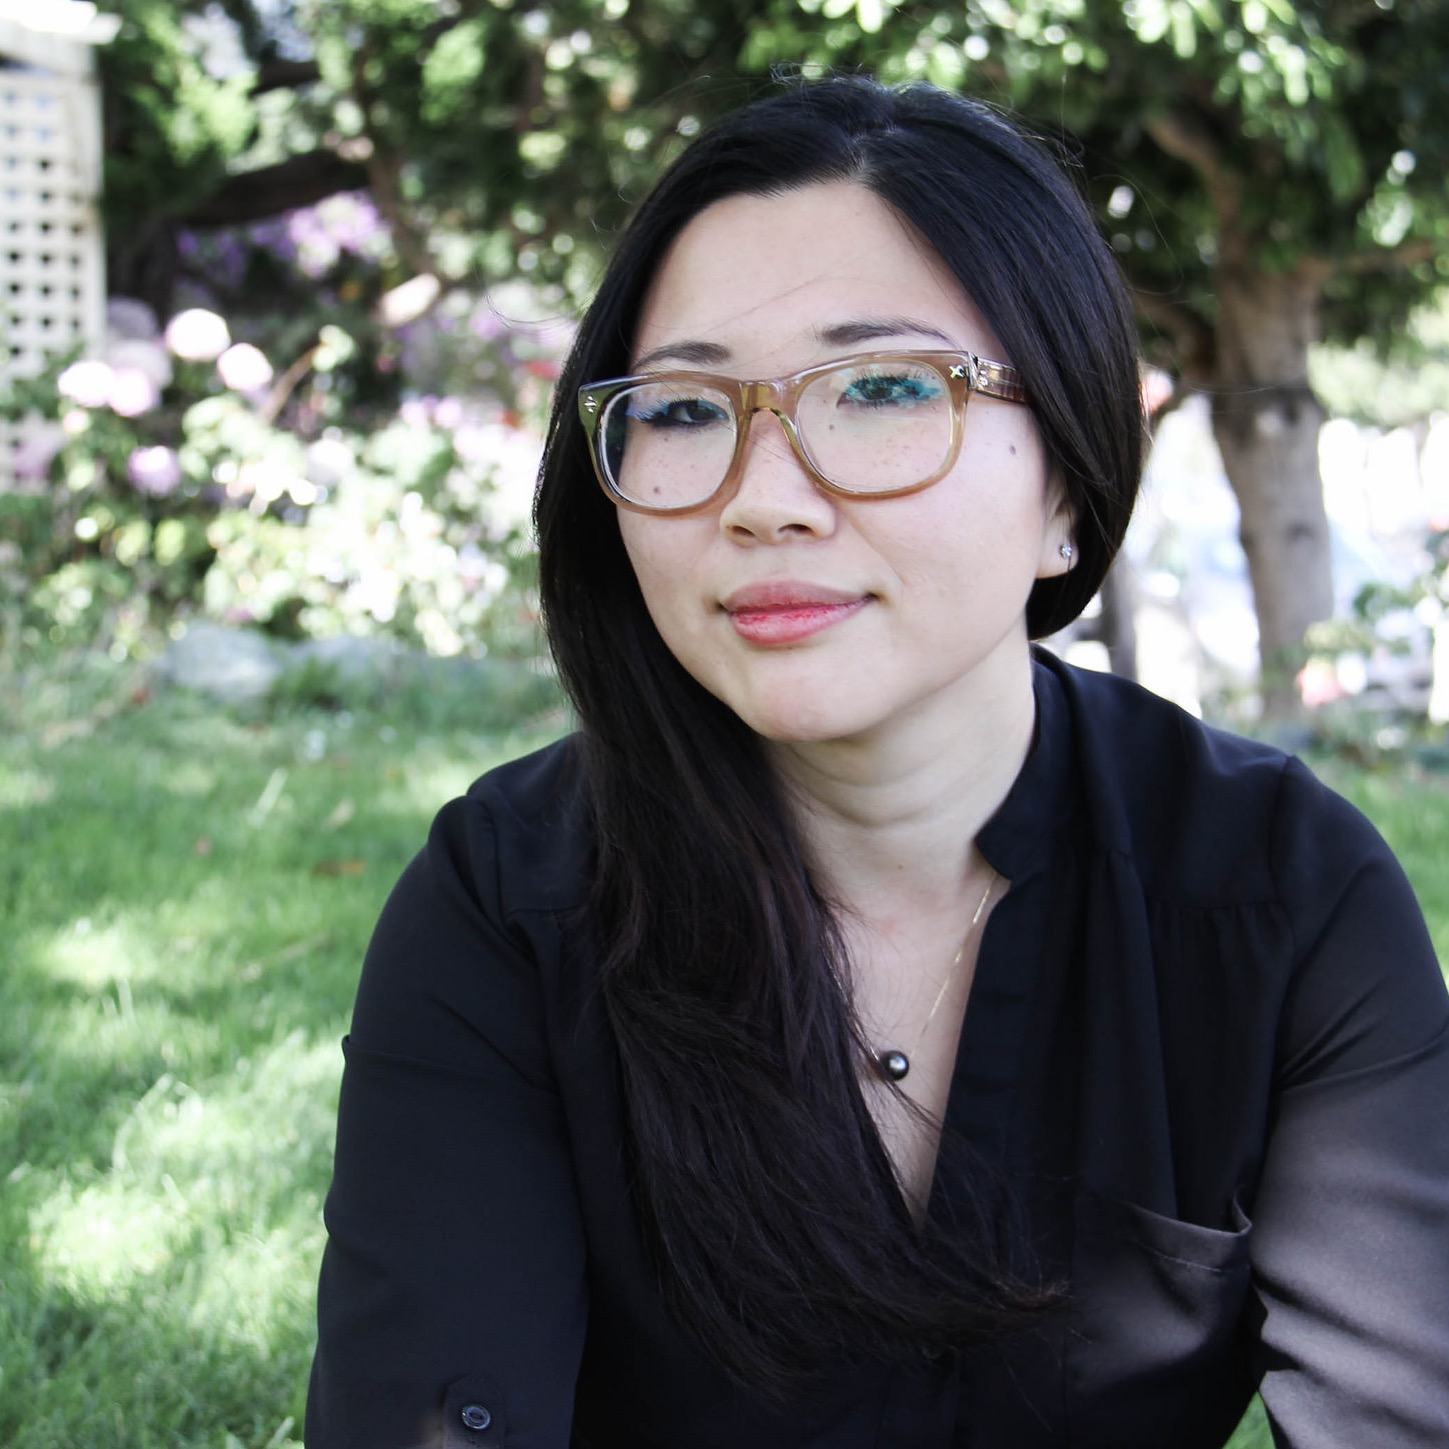 """Jenny Qi is getting her PhD in Biomedical Science at UC San Francisco. Her essays and poems have been published in various journals, including The Atlantic,Huffington Post, and Off the Coast.She is finishing her first chapbook. Her poem """" Writing Elegies Like Robert Hass""""  apperas in the Fall 2015 issue of The Intima."""